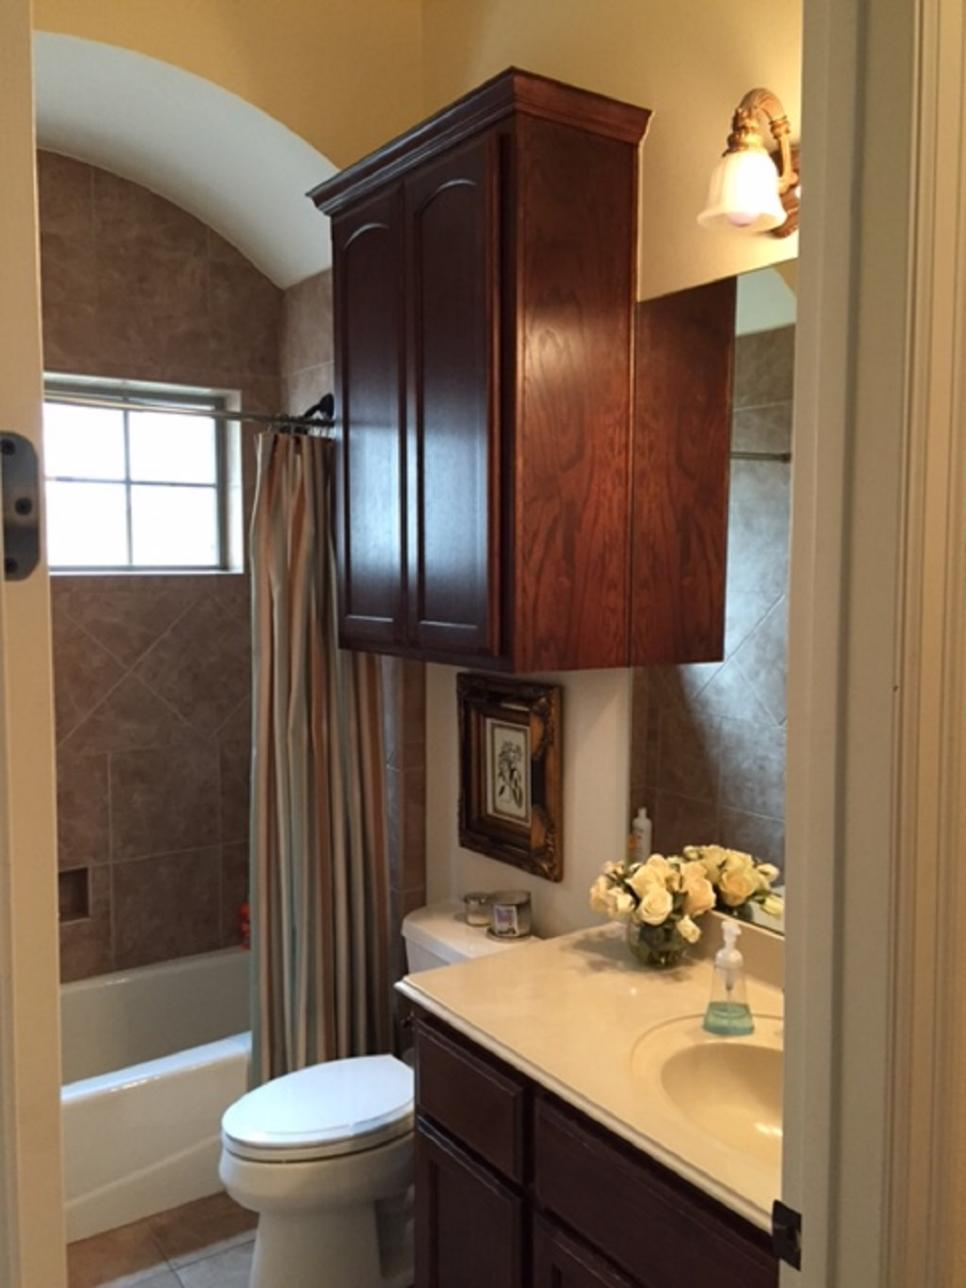 Before and after bathroom remodels on a budget hgtv for Bathroom remodel ideas